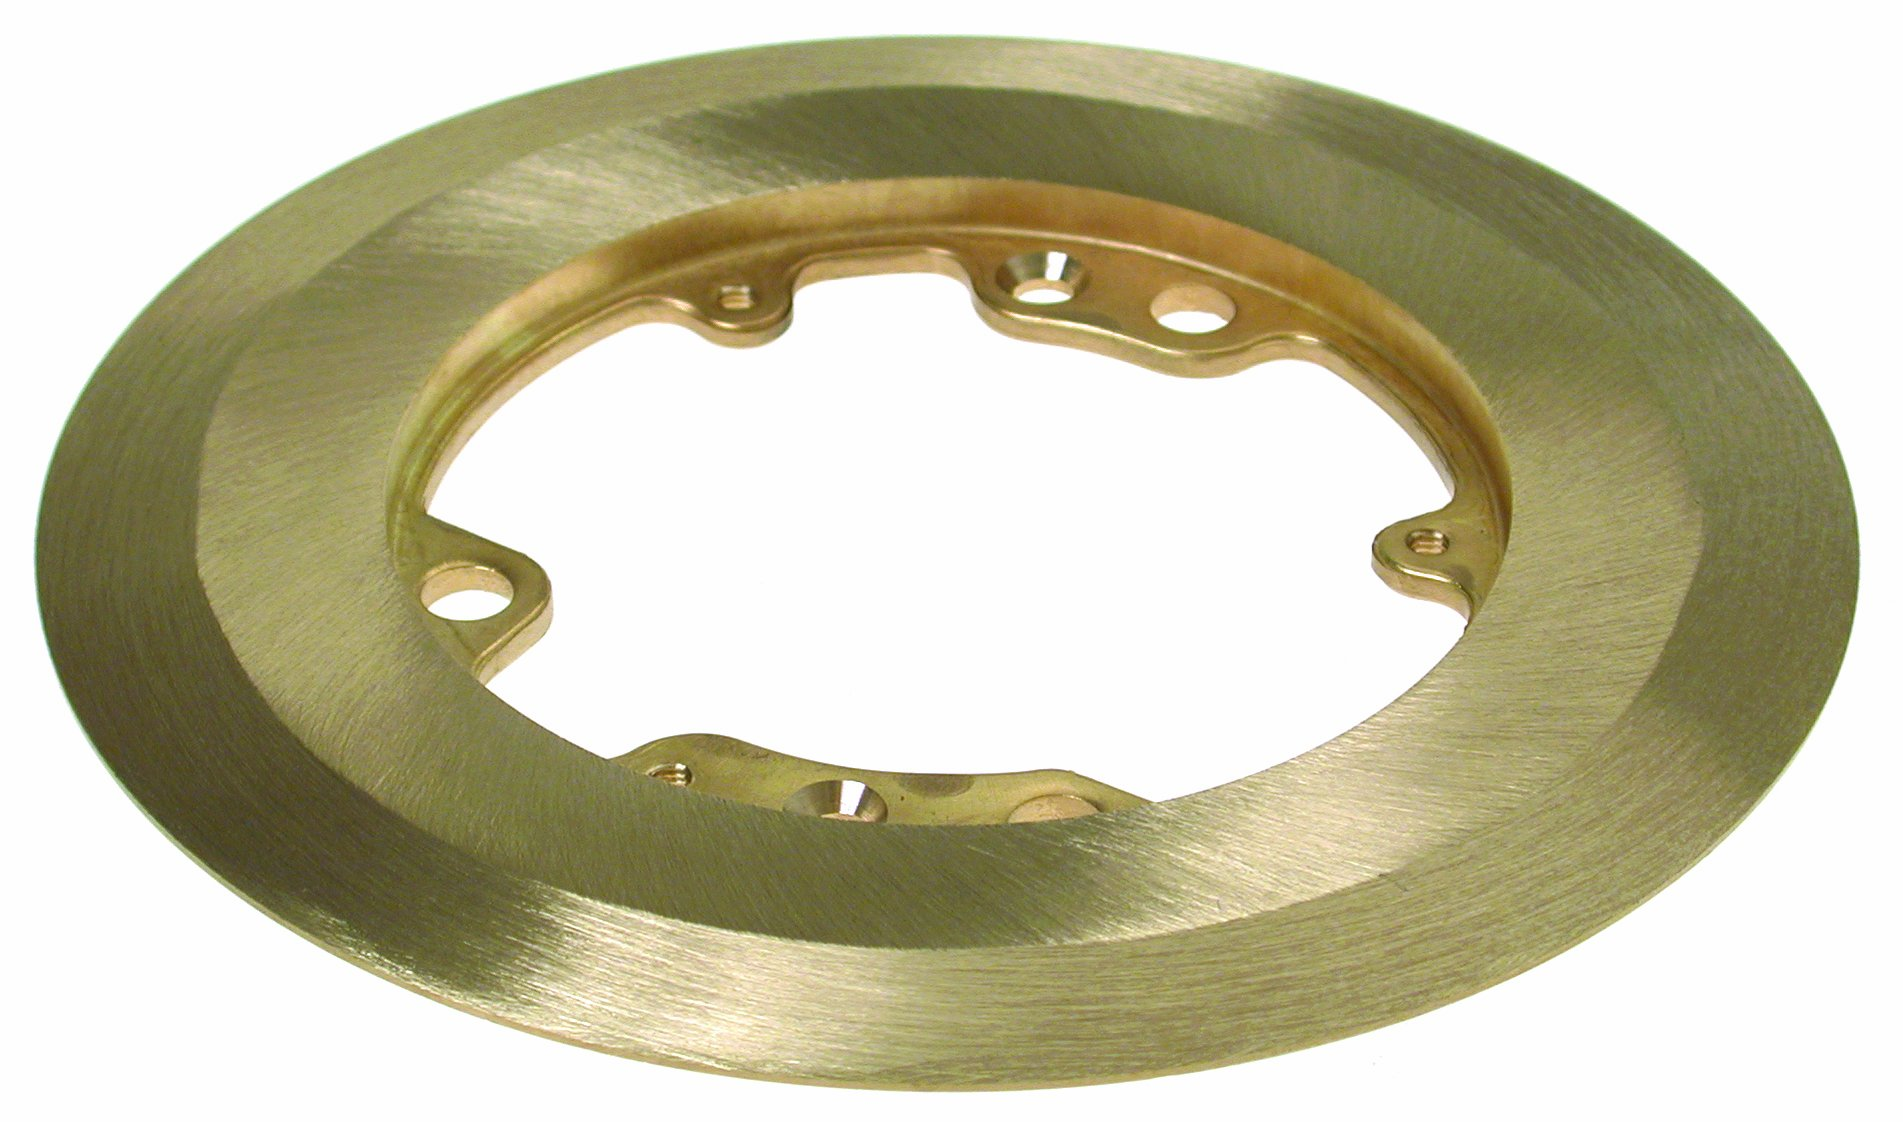 Hubbell-Raco 6235 6-1/4-Inch Round Brass Carpet Flange